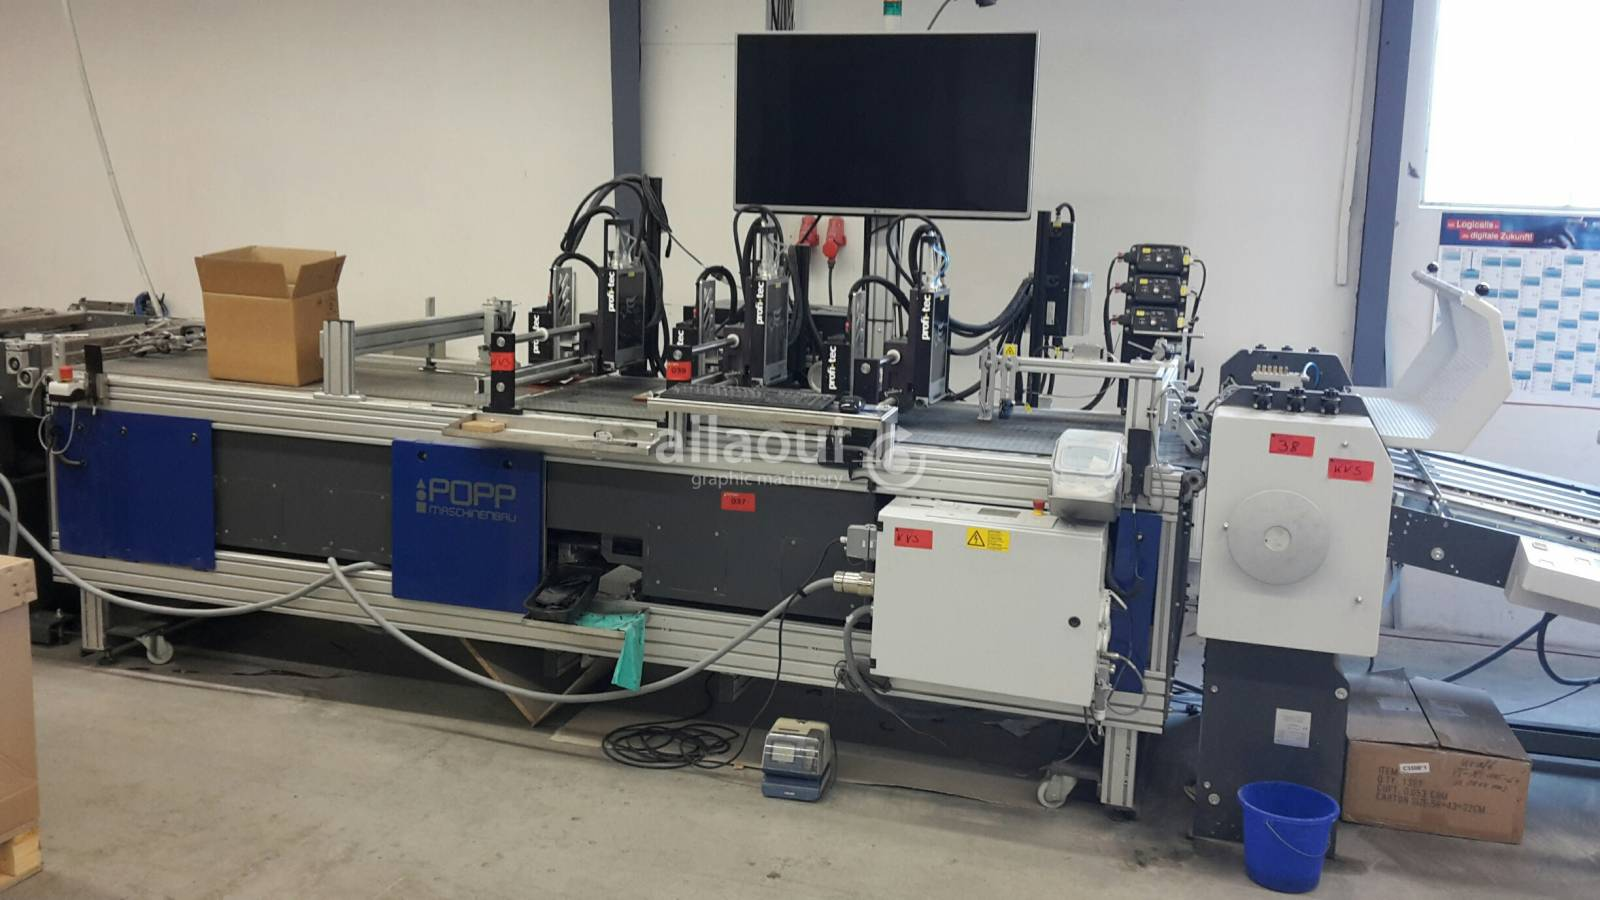 Popp Mailing / Inkjet Anlage Picture 1